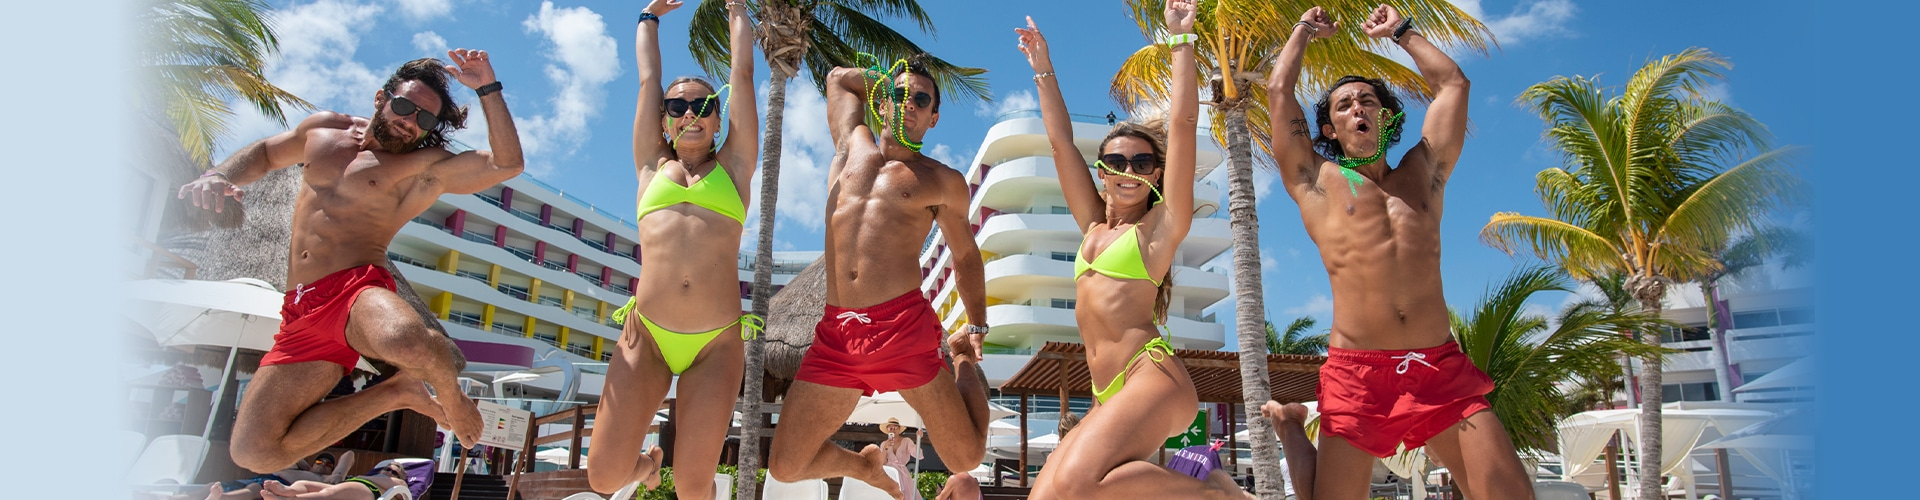 Temptation Resorts & Cruises | TRENDY • TOPLESS-OPTIONAL AREAS • ADULT-CENTRIC EXPERIENCE • FUN • AUTHENTIC • ALL-INCLUSIVE • PARTY ATMOSPHERE